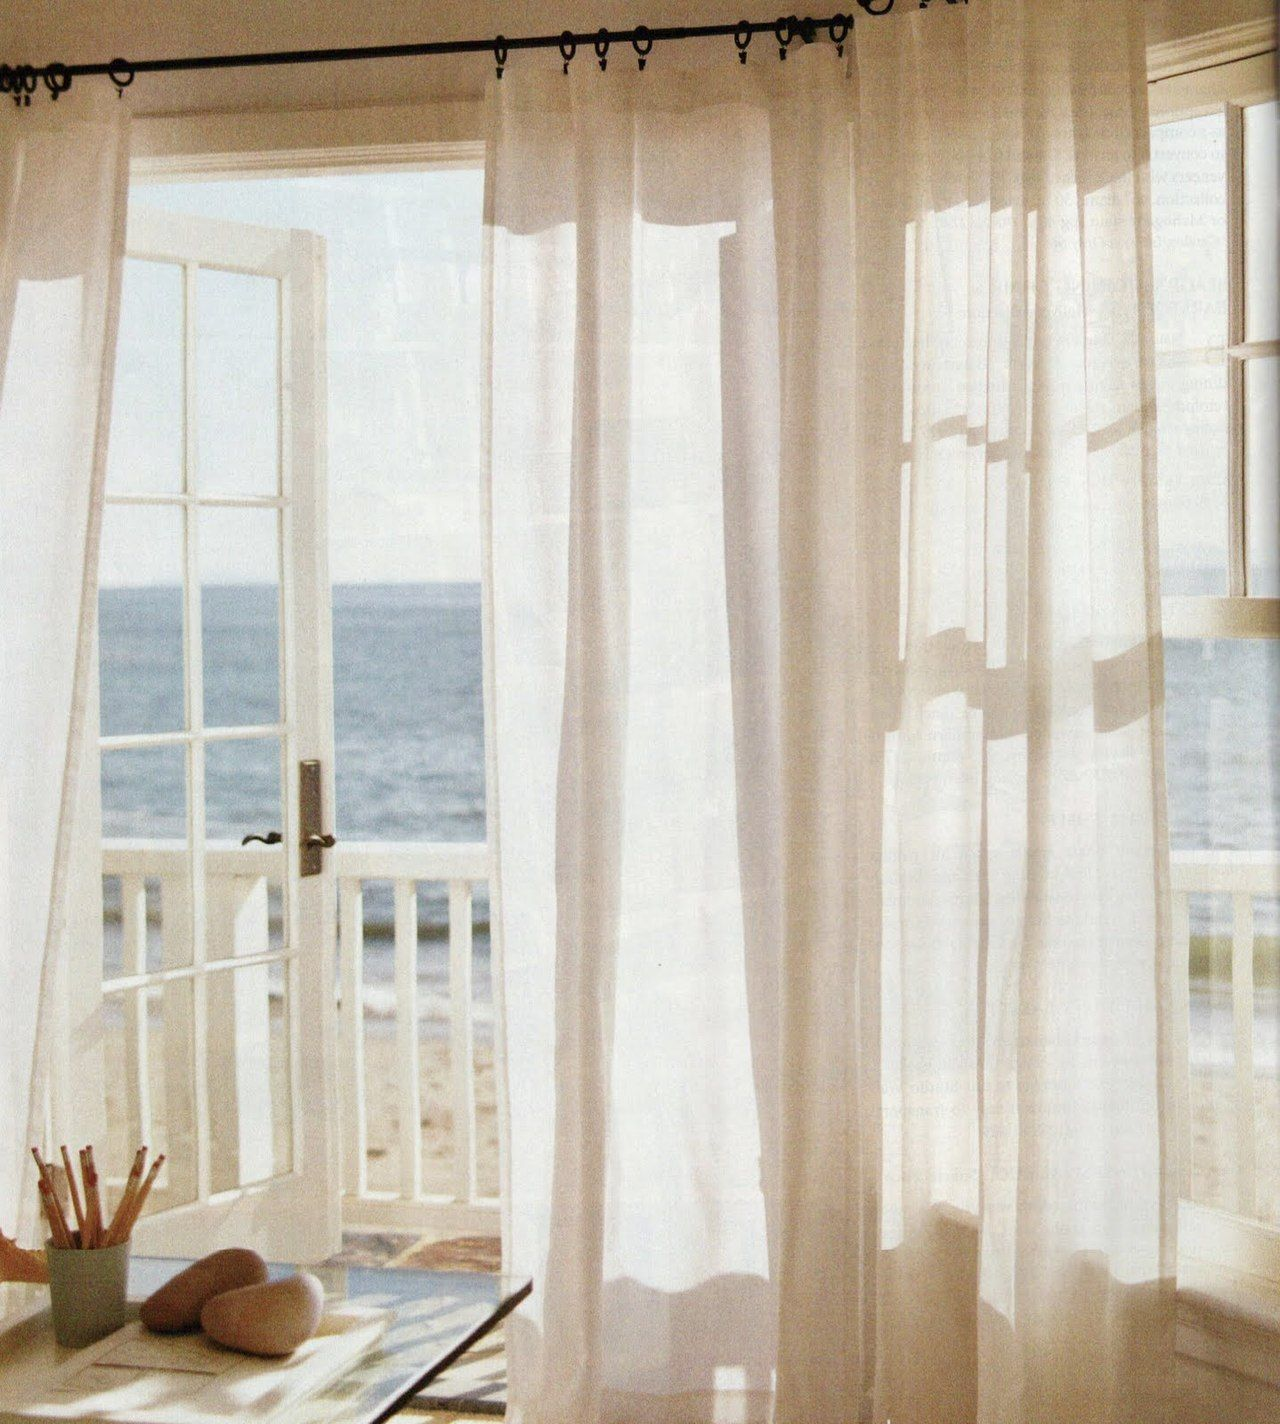 Breezy Home Office...Sheer Curtains And French Doors Leading Out To Beach  House Balcony Looking Over The Sand And Ocean.